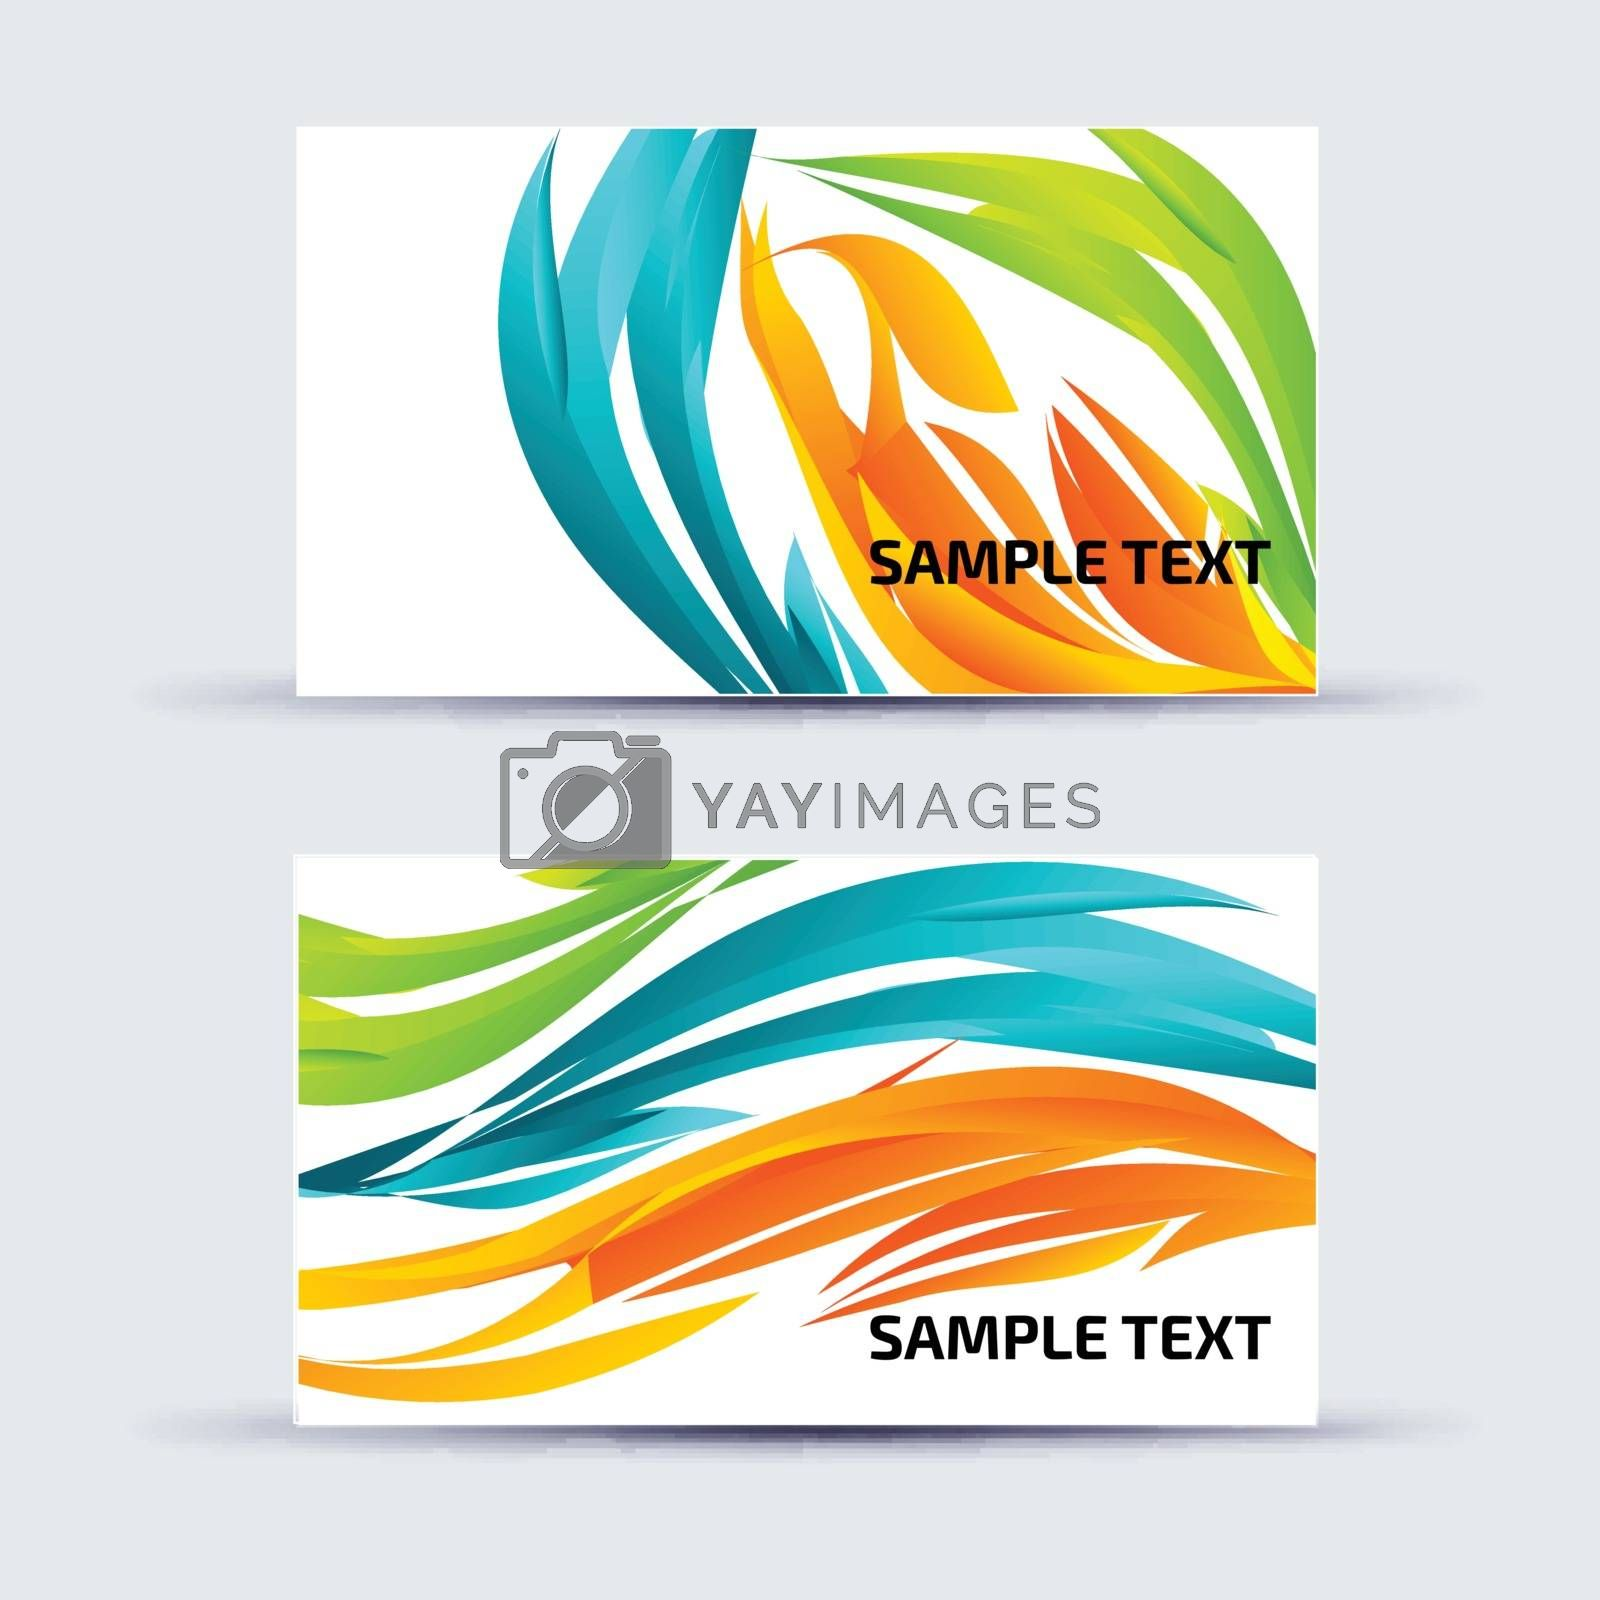 Vector illustration with a business card template.